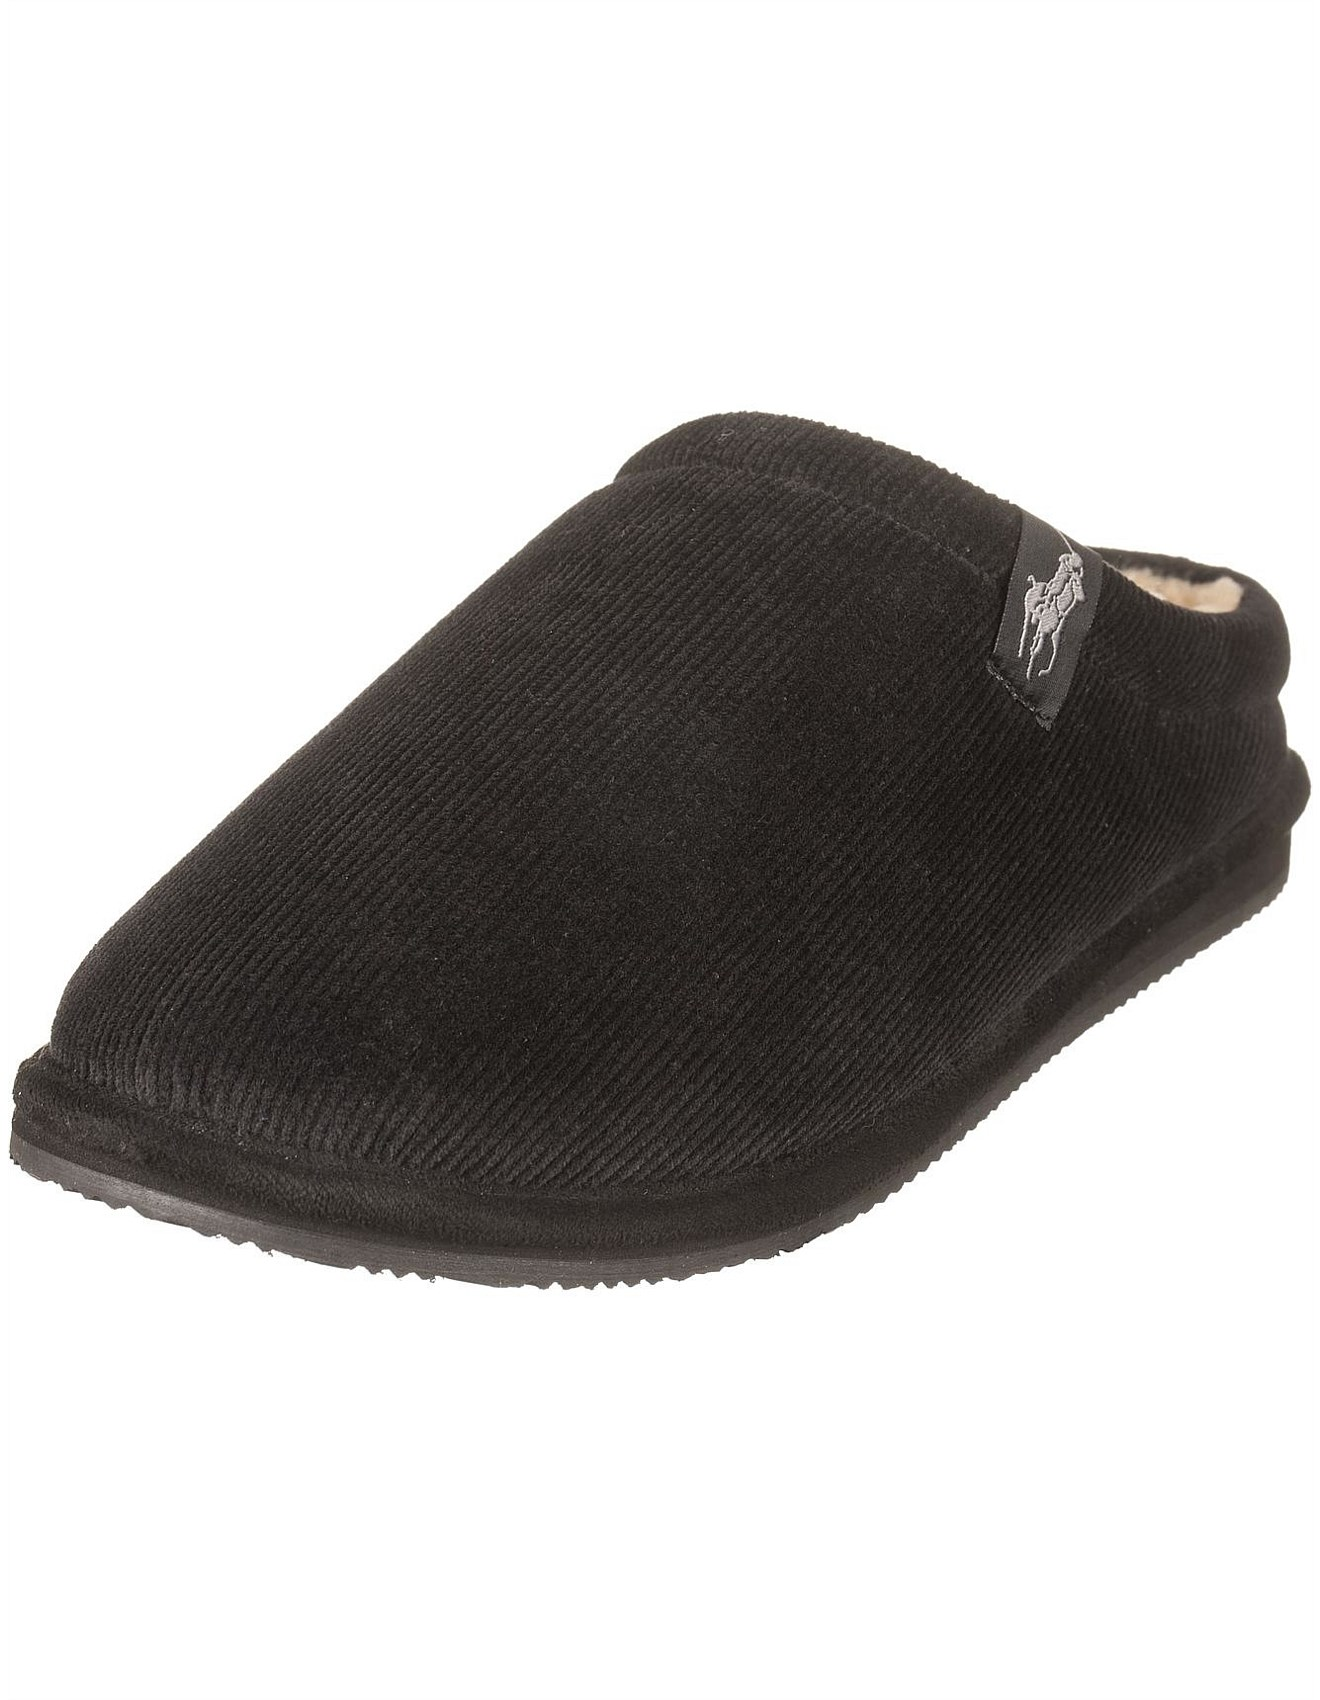 a9bbe121be3ef Men s Slippers